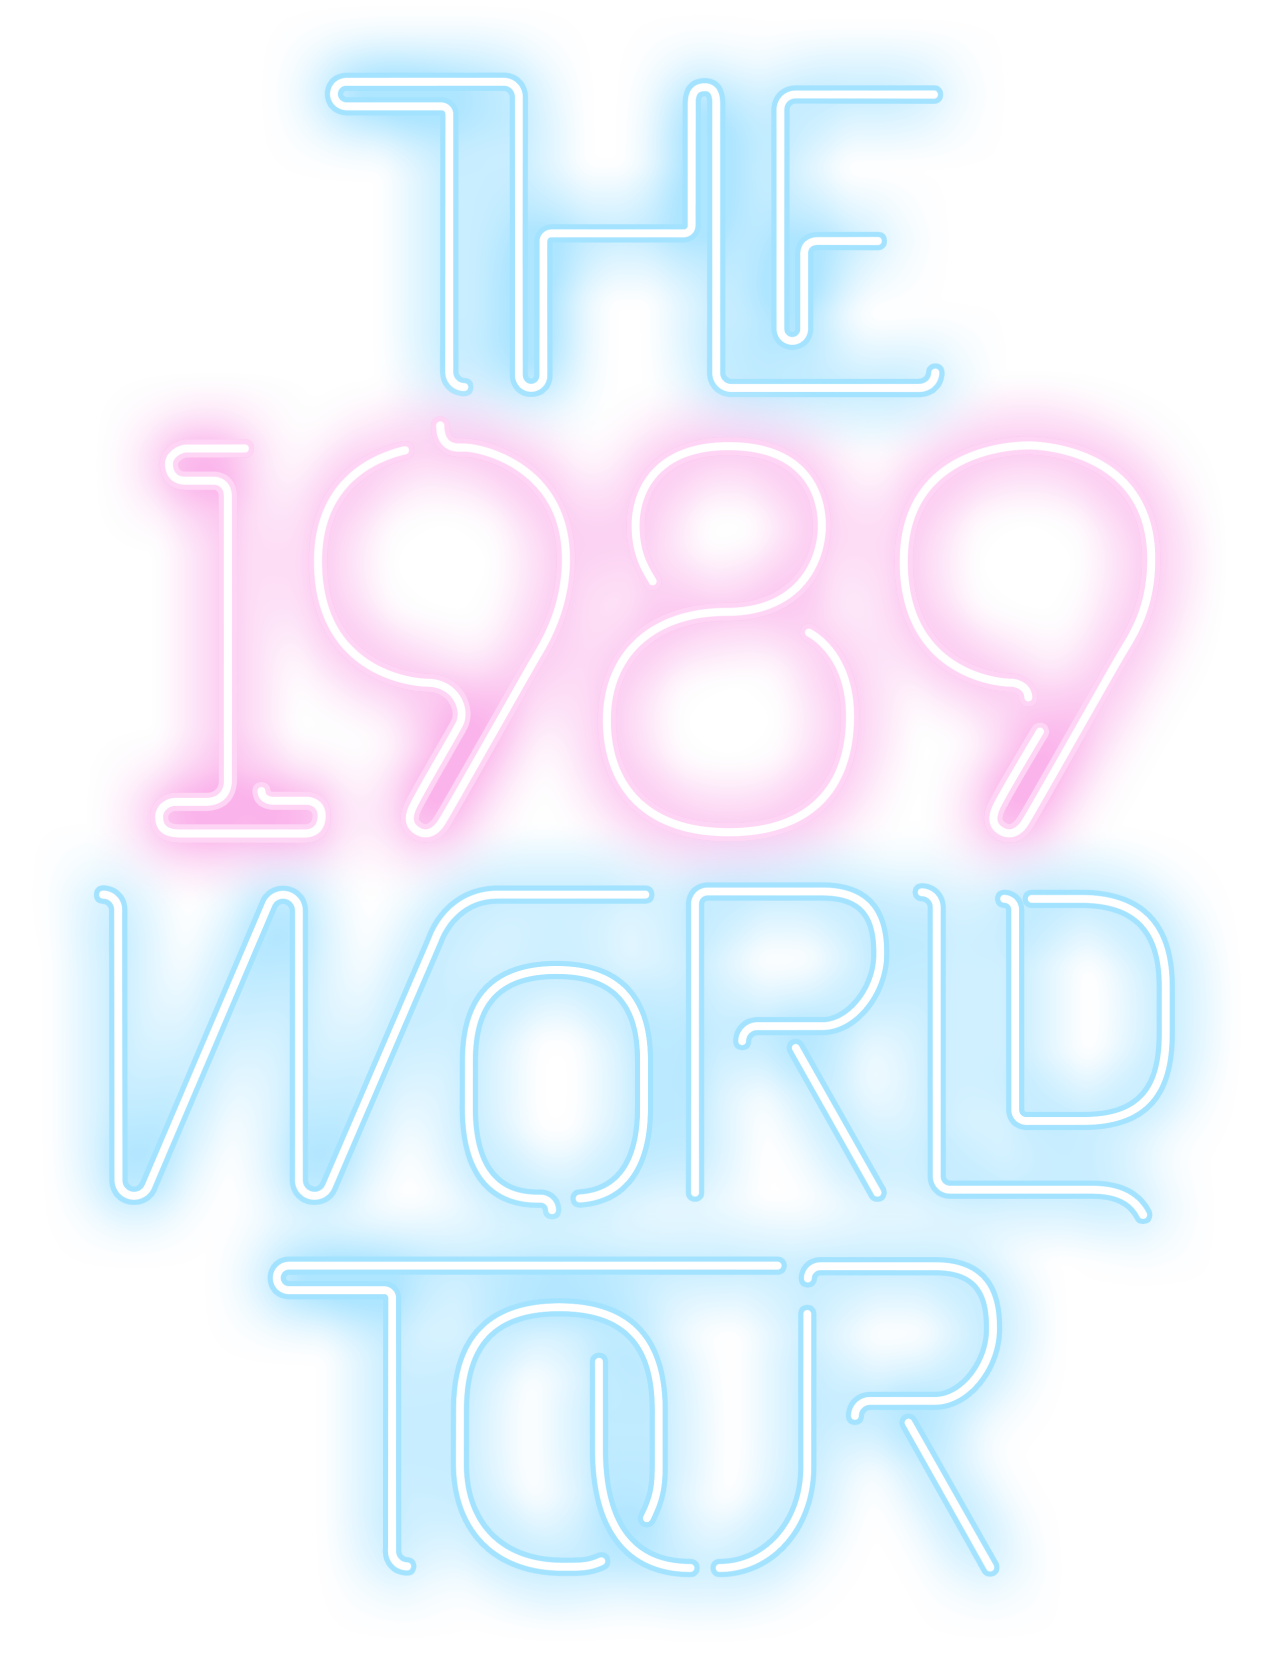 File:The 1989 World Tour Logo png - Wikimedia Commons